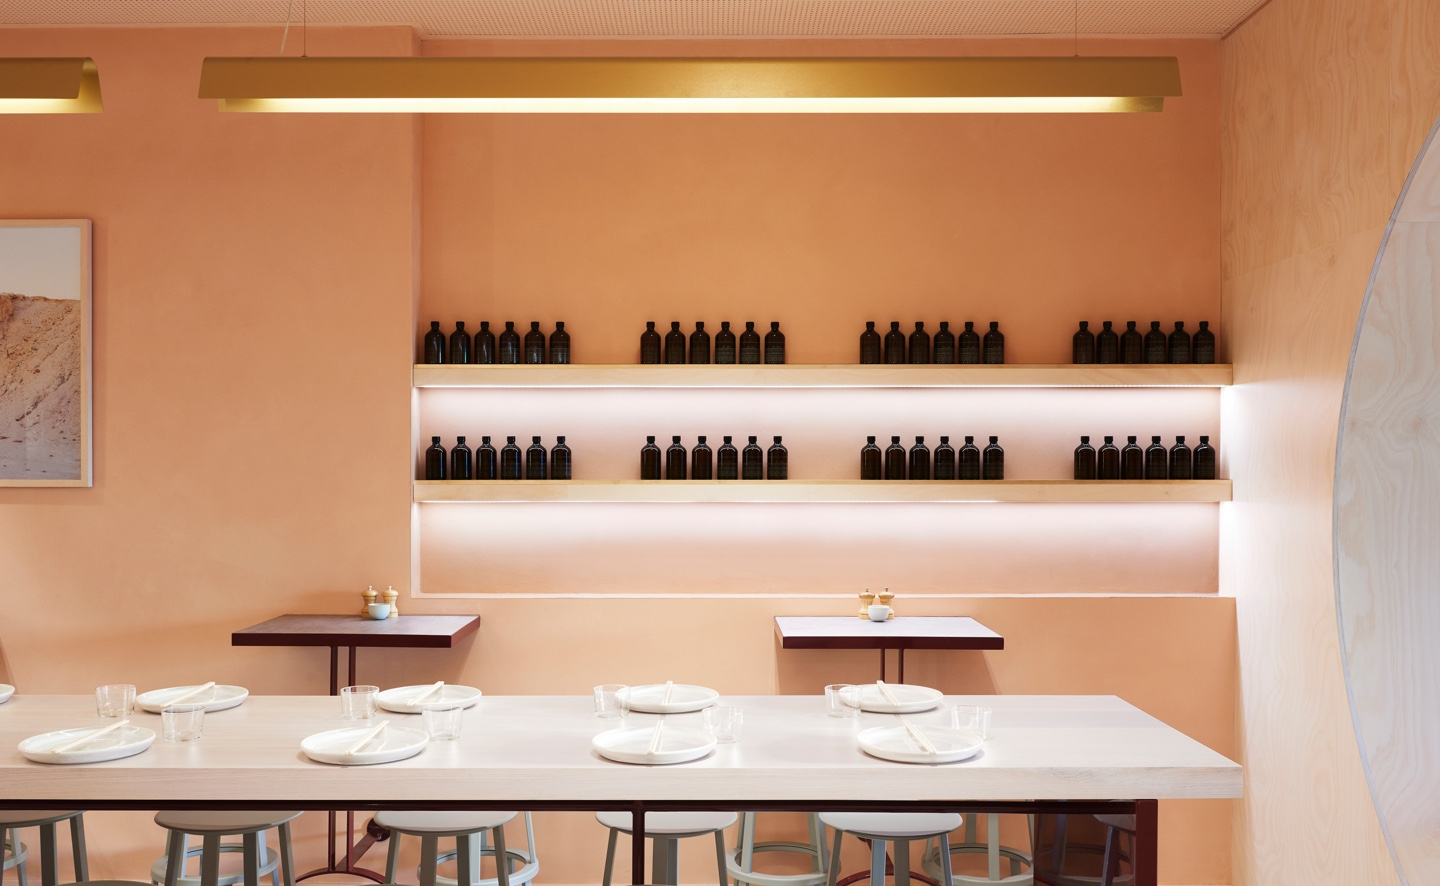 large shared table in front of well lit pink wall done in velvet cremorne plaster finish.